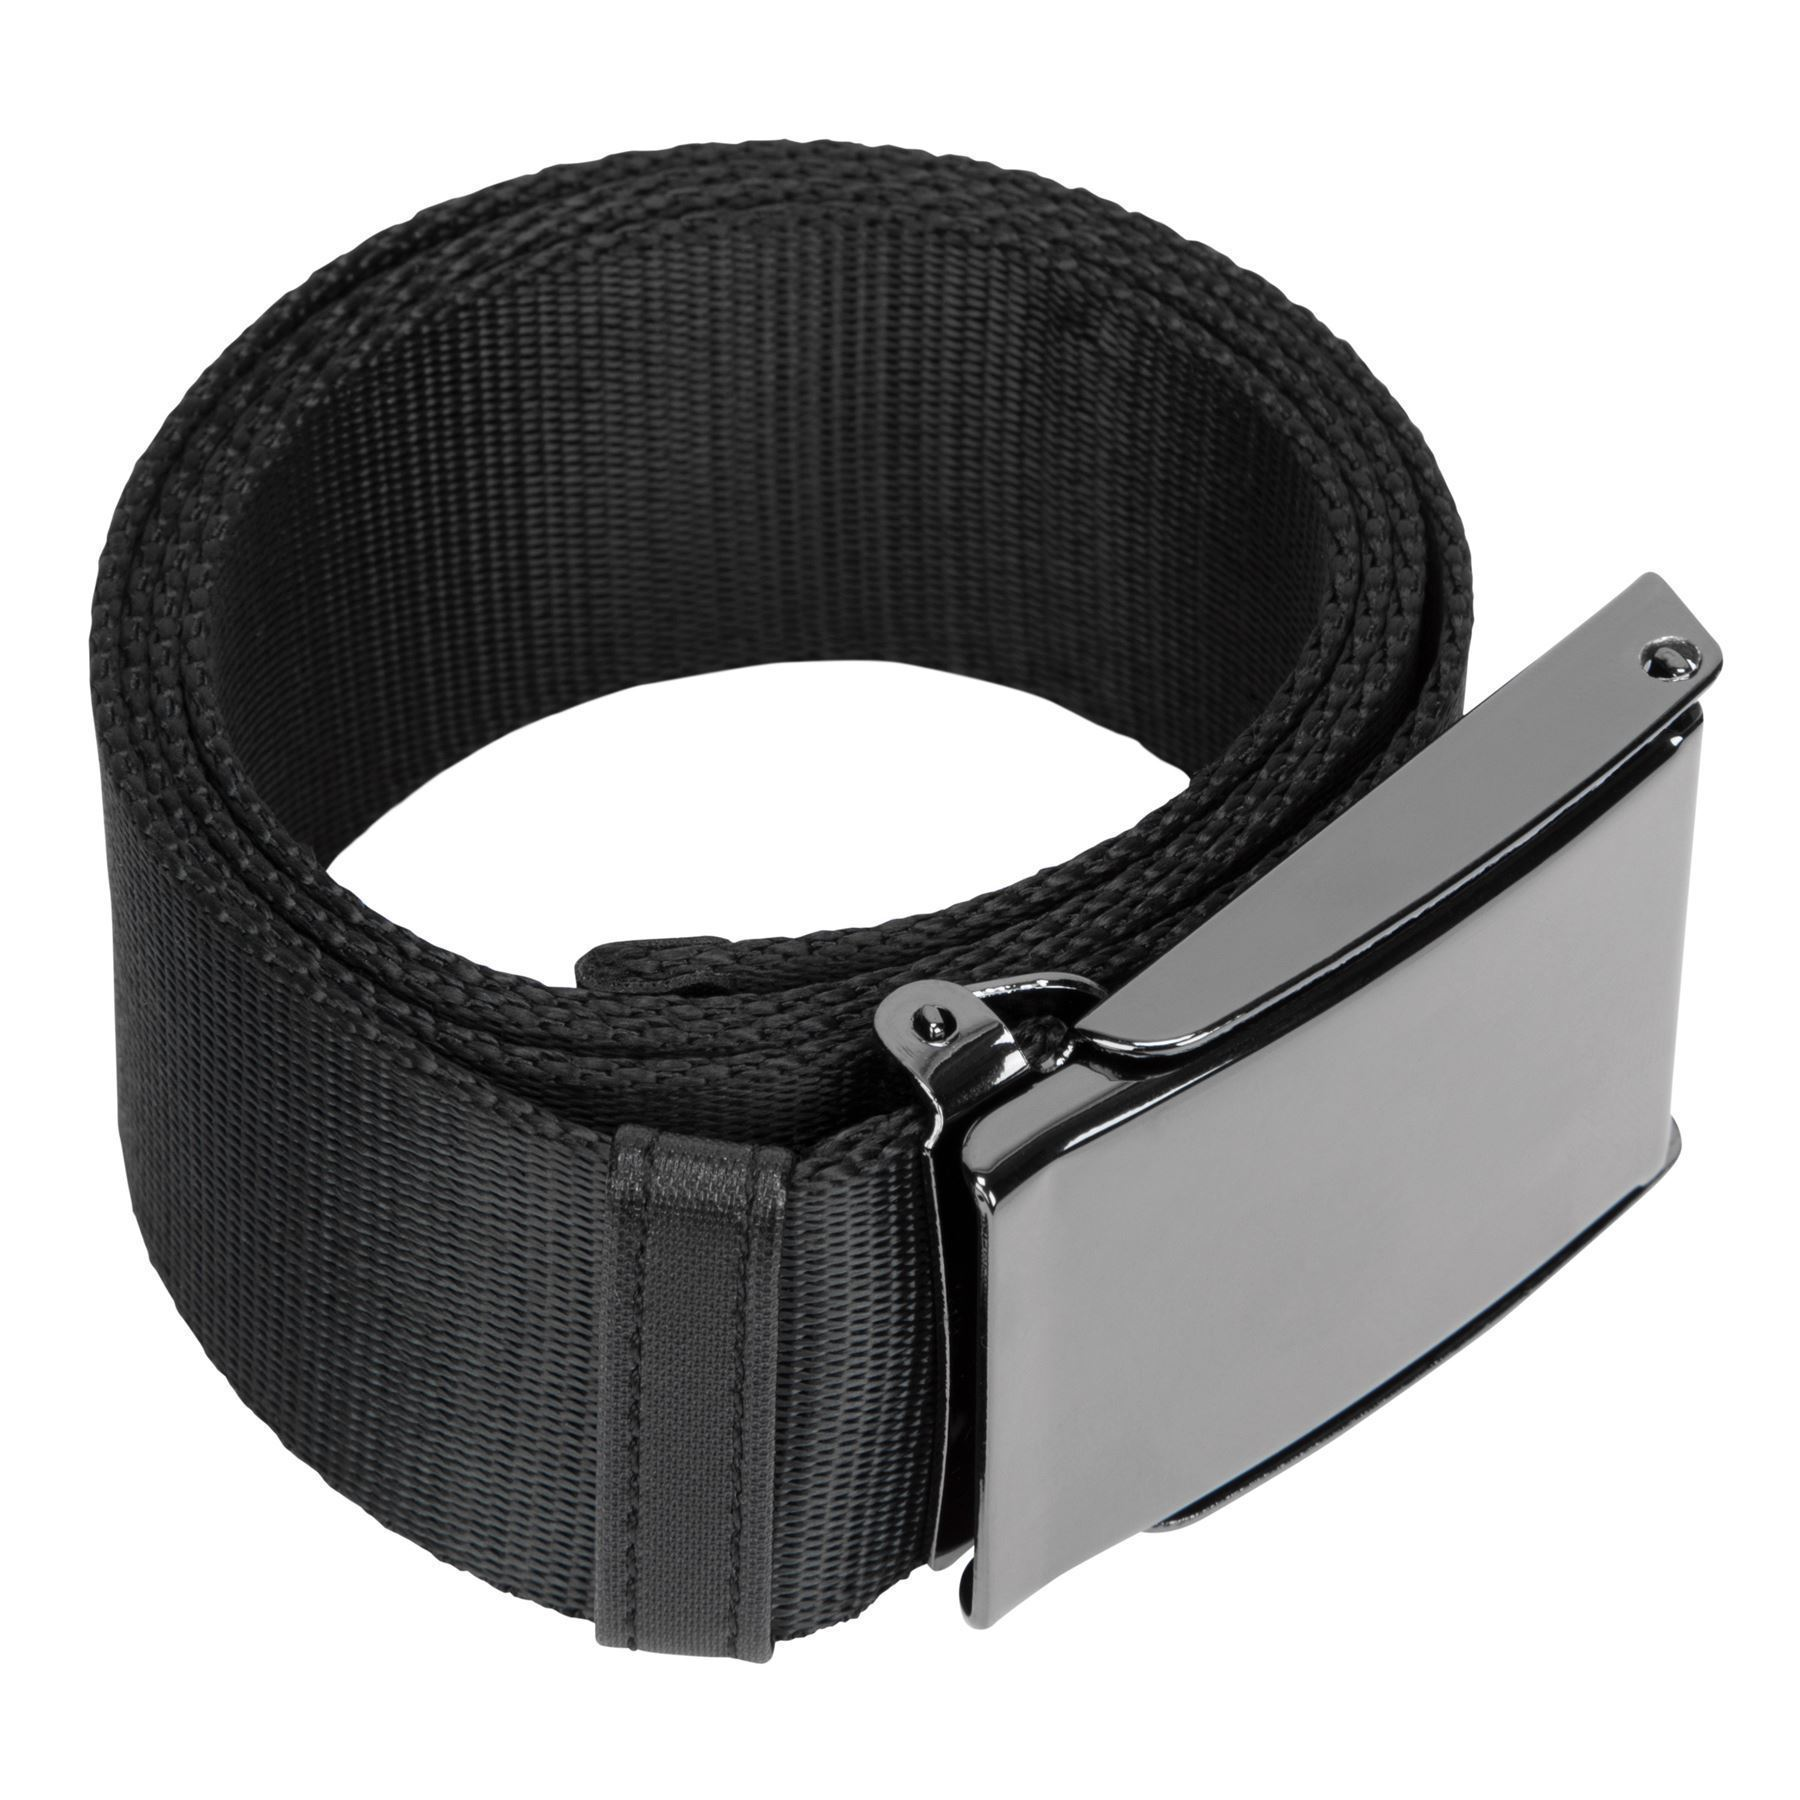 "Picture of Field Ready Universal Belt Large w/o holster - 38-54"" / 96-137cm"